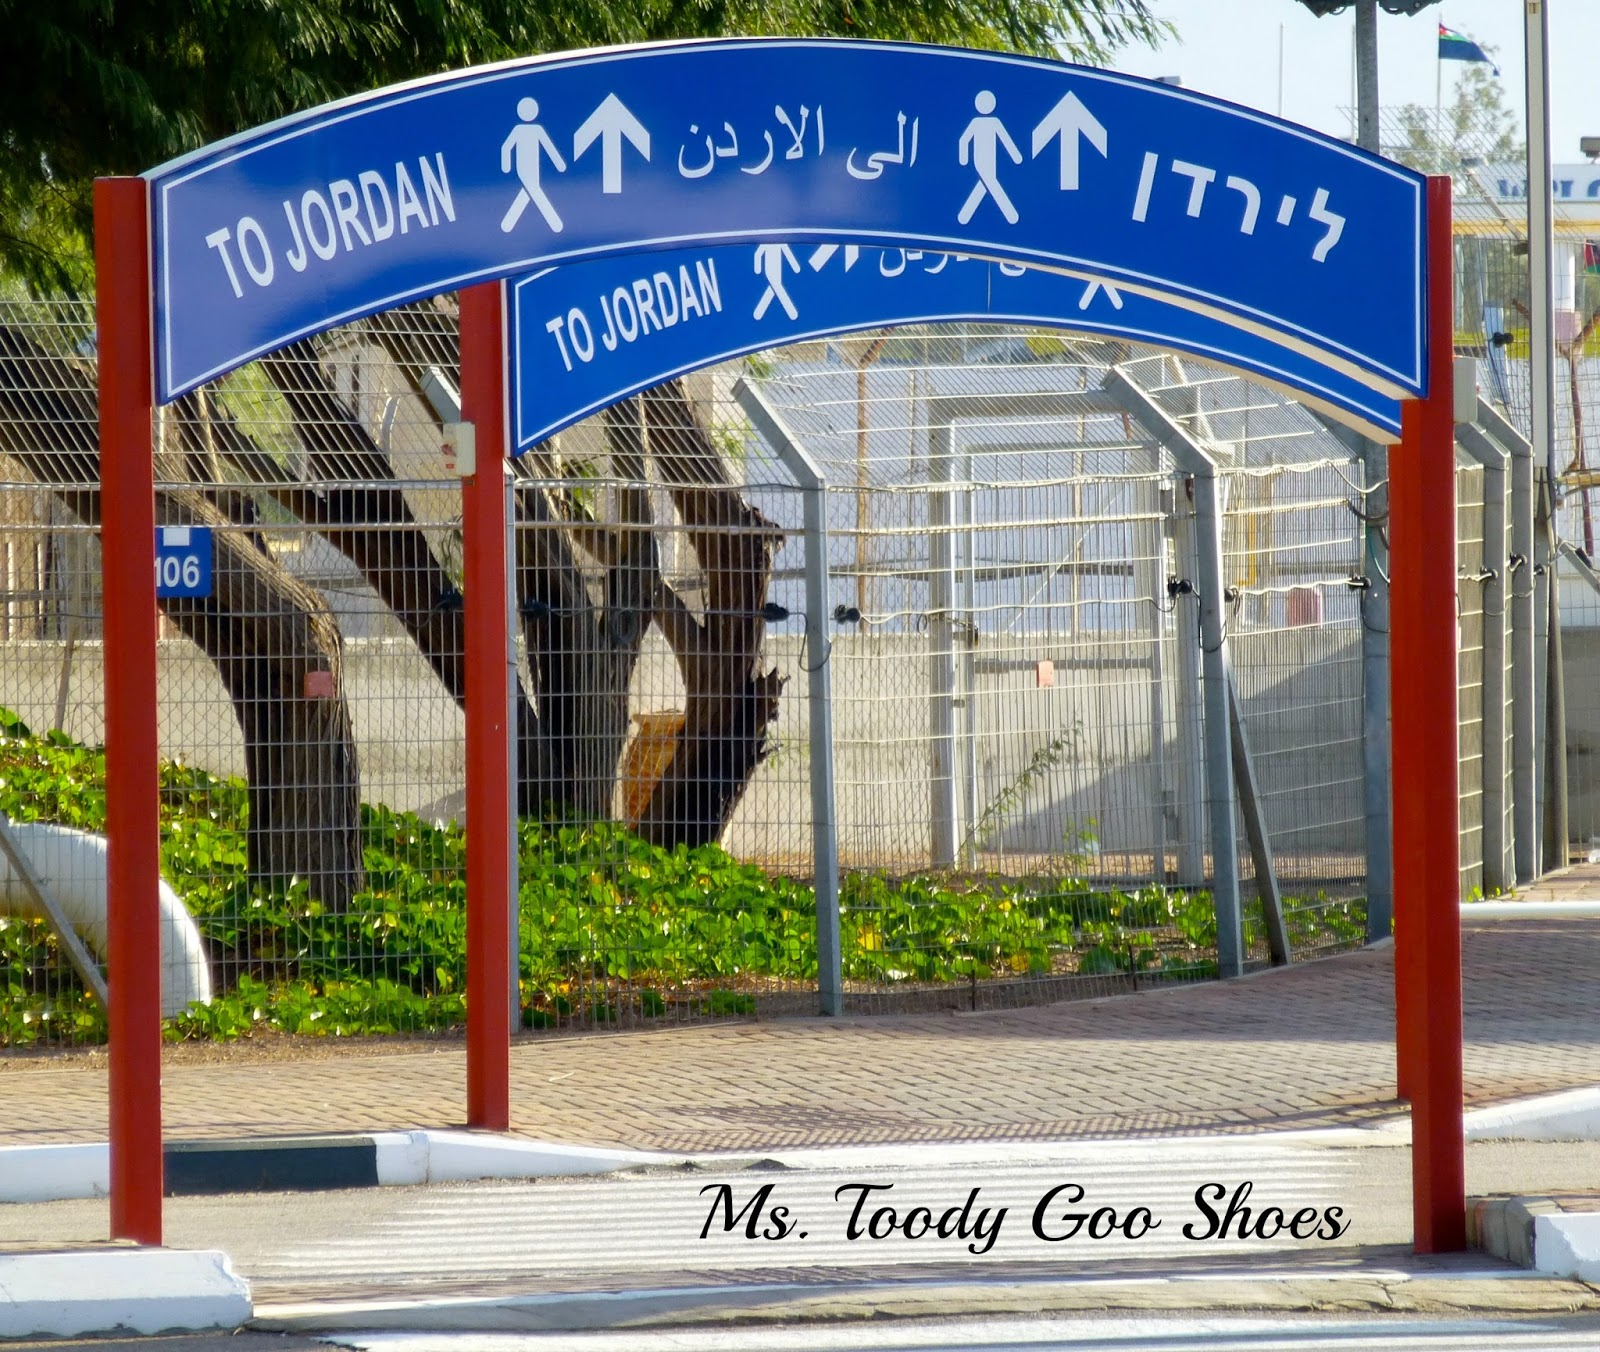 Walking across the border from Israel to Jordan --- Ms. Toody Goo Shoes